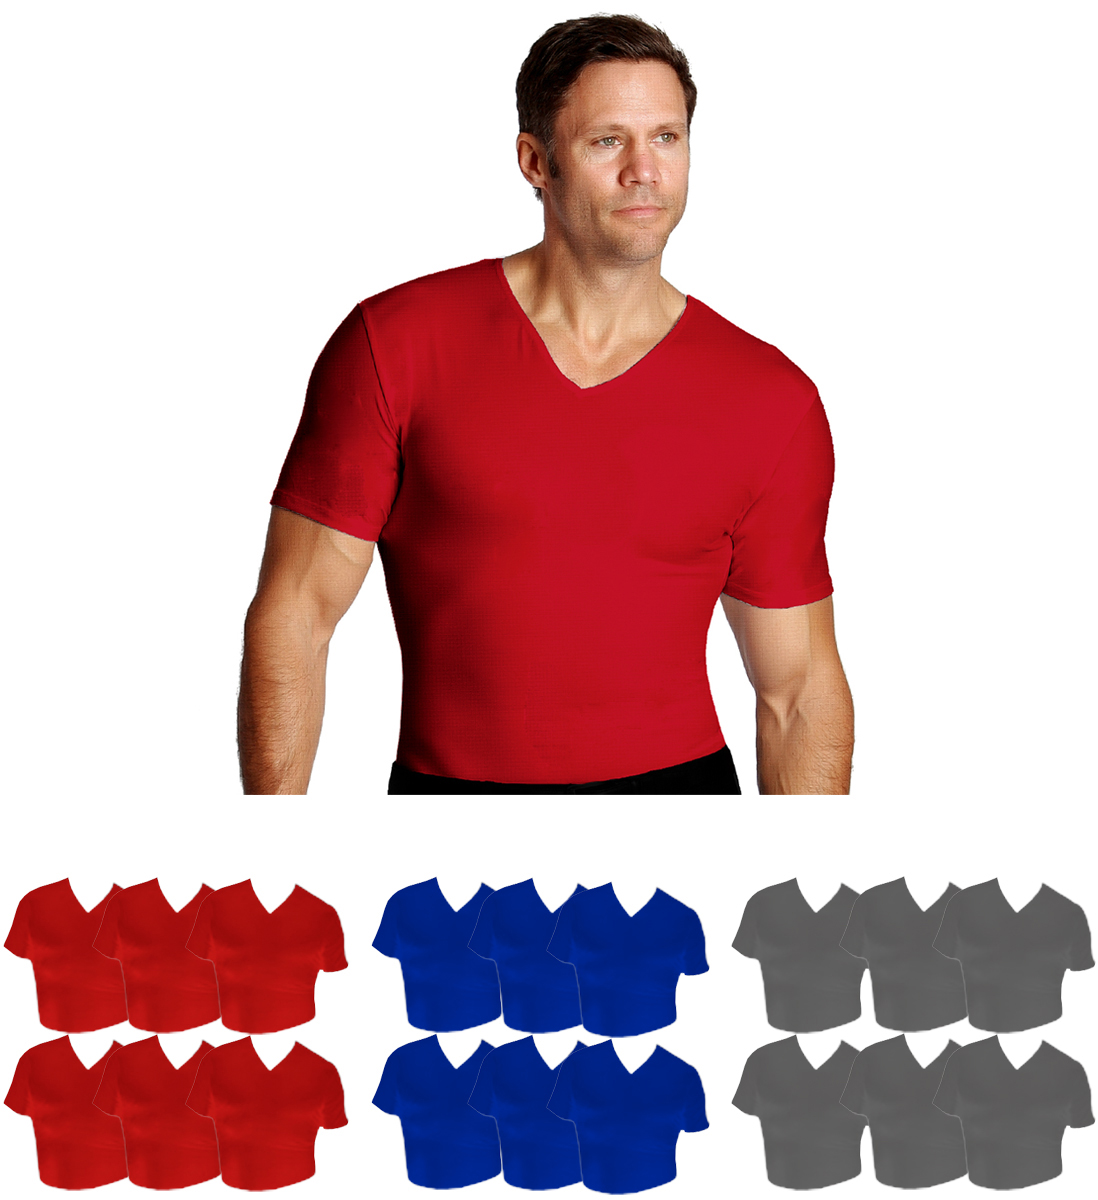 6 Pack IS PRO Activewear Compression V-neck T-shirts VA0006